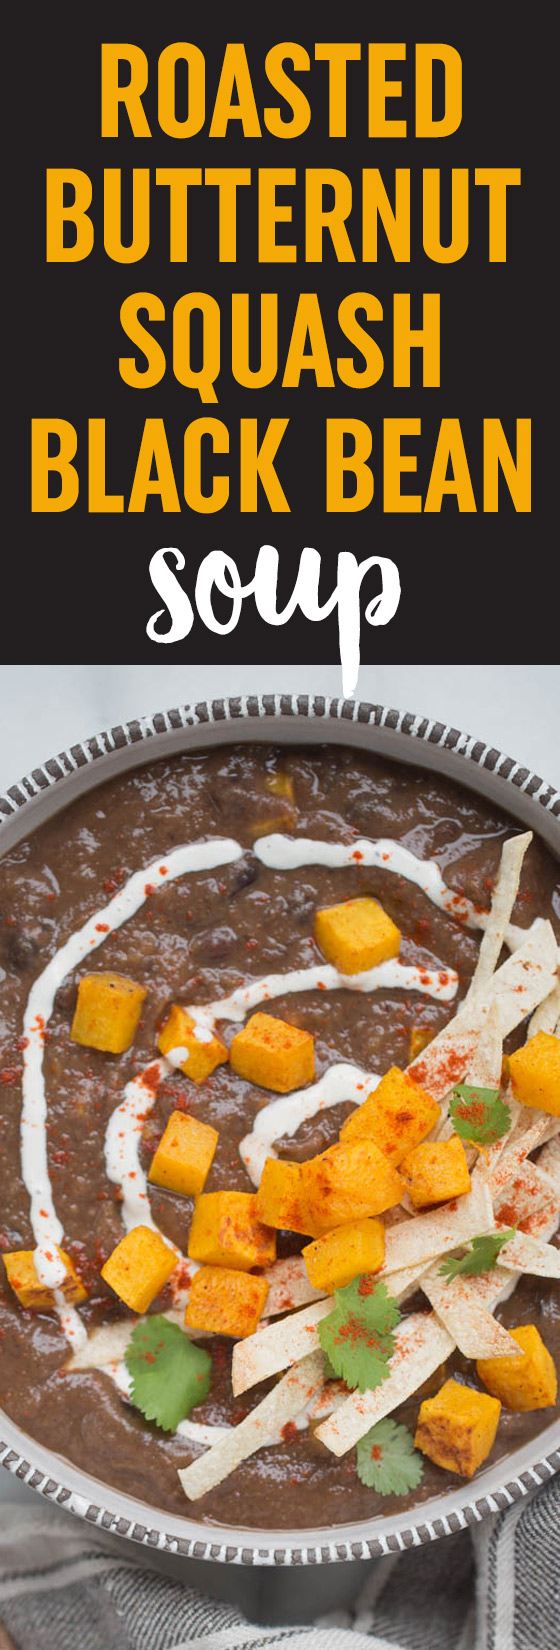 Roasted Butternut Squash Black Bean Soup - Kitchen Treaty